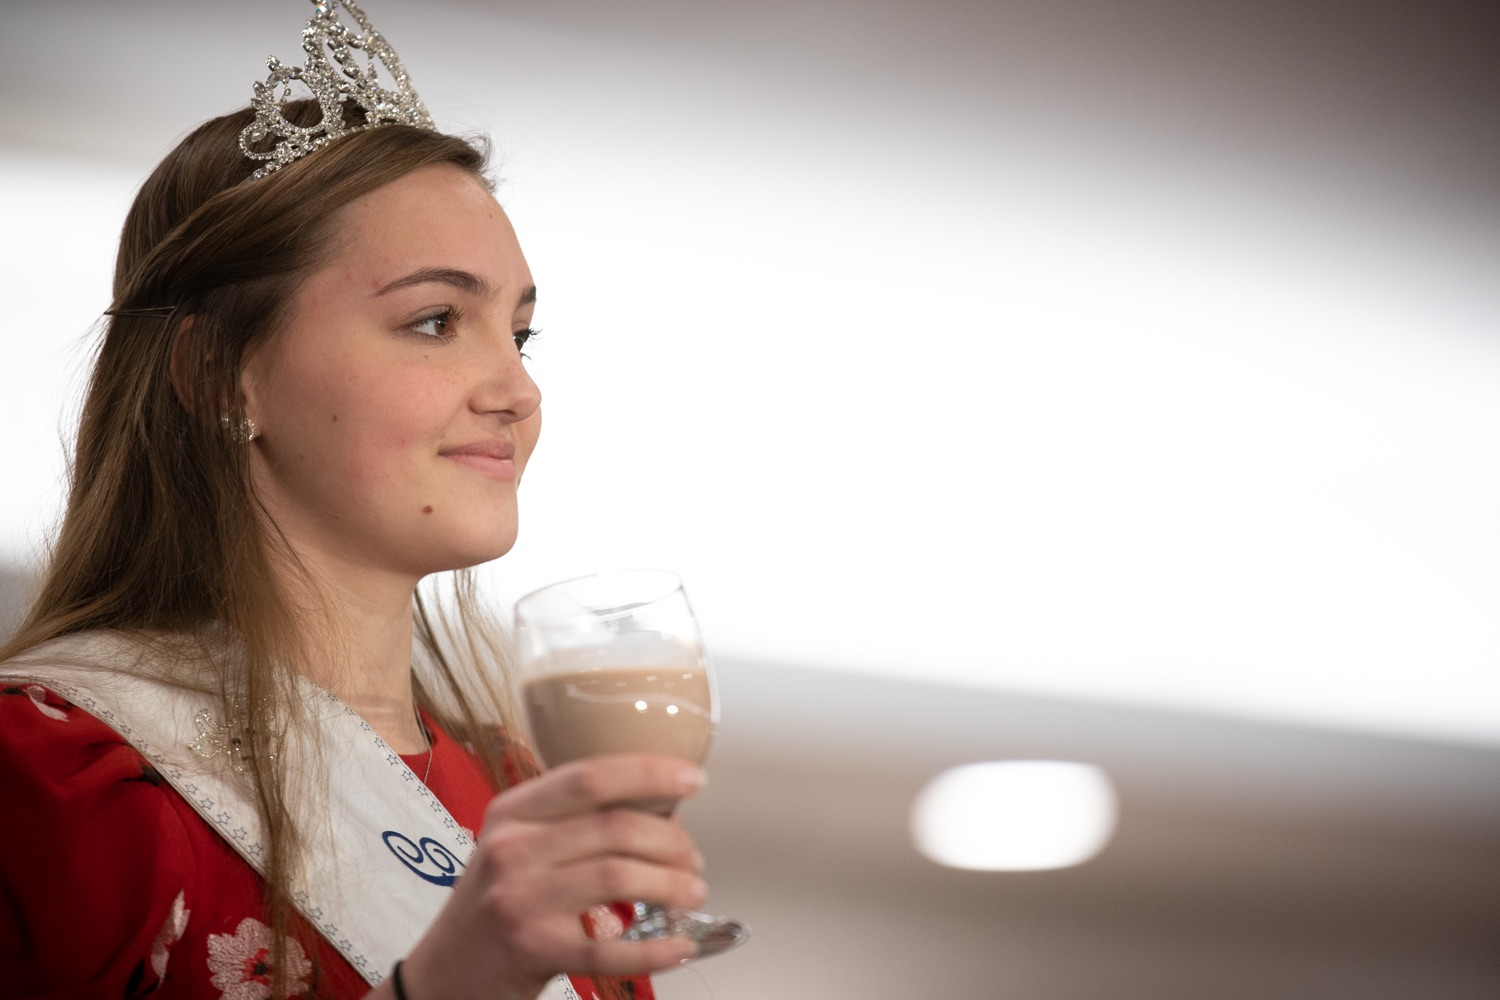 "<a href=""http://filesource.abacast.com/commonwealthofpa/photo/17650_agric_public_officials_day_dz_003.jpg"" target=""_blank"">⇣ Download Photo<br></a>Paige Peiffer PA Dairy Princess offering up the Milk Toast at Public Officials Day.  Addressing nearly 800 public officials at the Pennsylvania Farm Show today, Agriculture Secretary Russell Redding announced the opening of the last grant program made possible by the 2019 PA Farm Bill. The $1 million Farm Vitality Grant Program aims to enhance the long-term health and vitality of Pennsylvanias family farms. Harrisburg, PA  January 08, 2020"